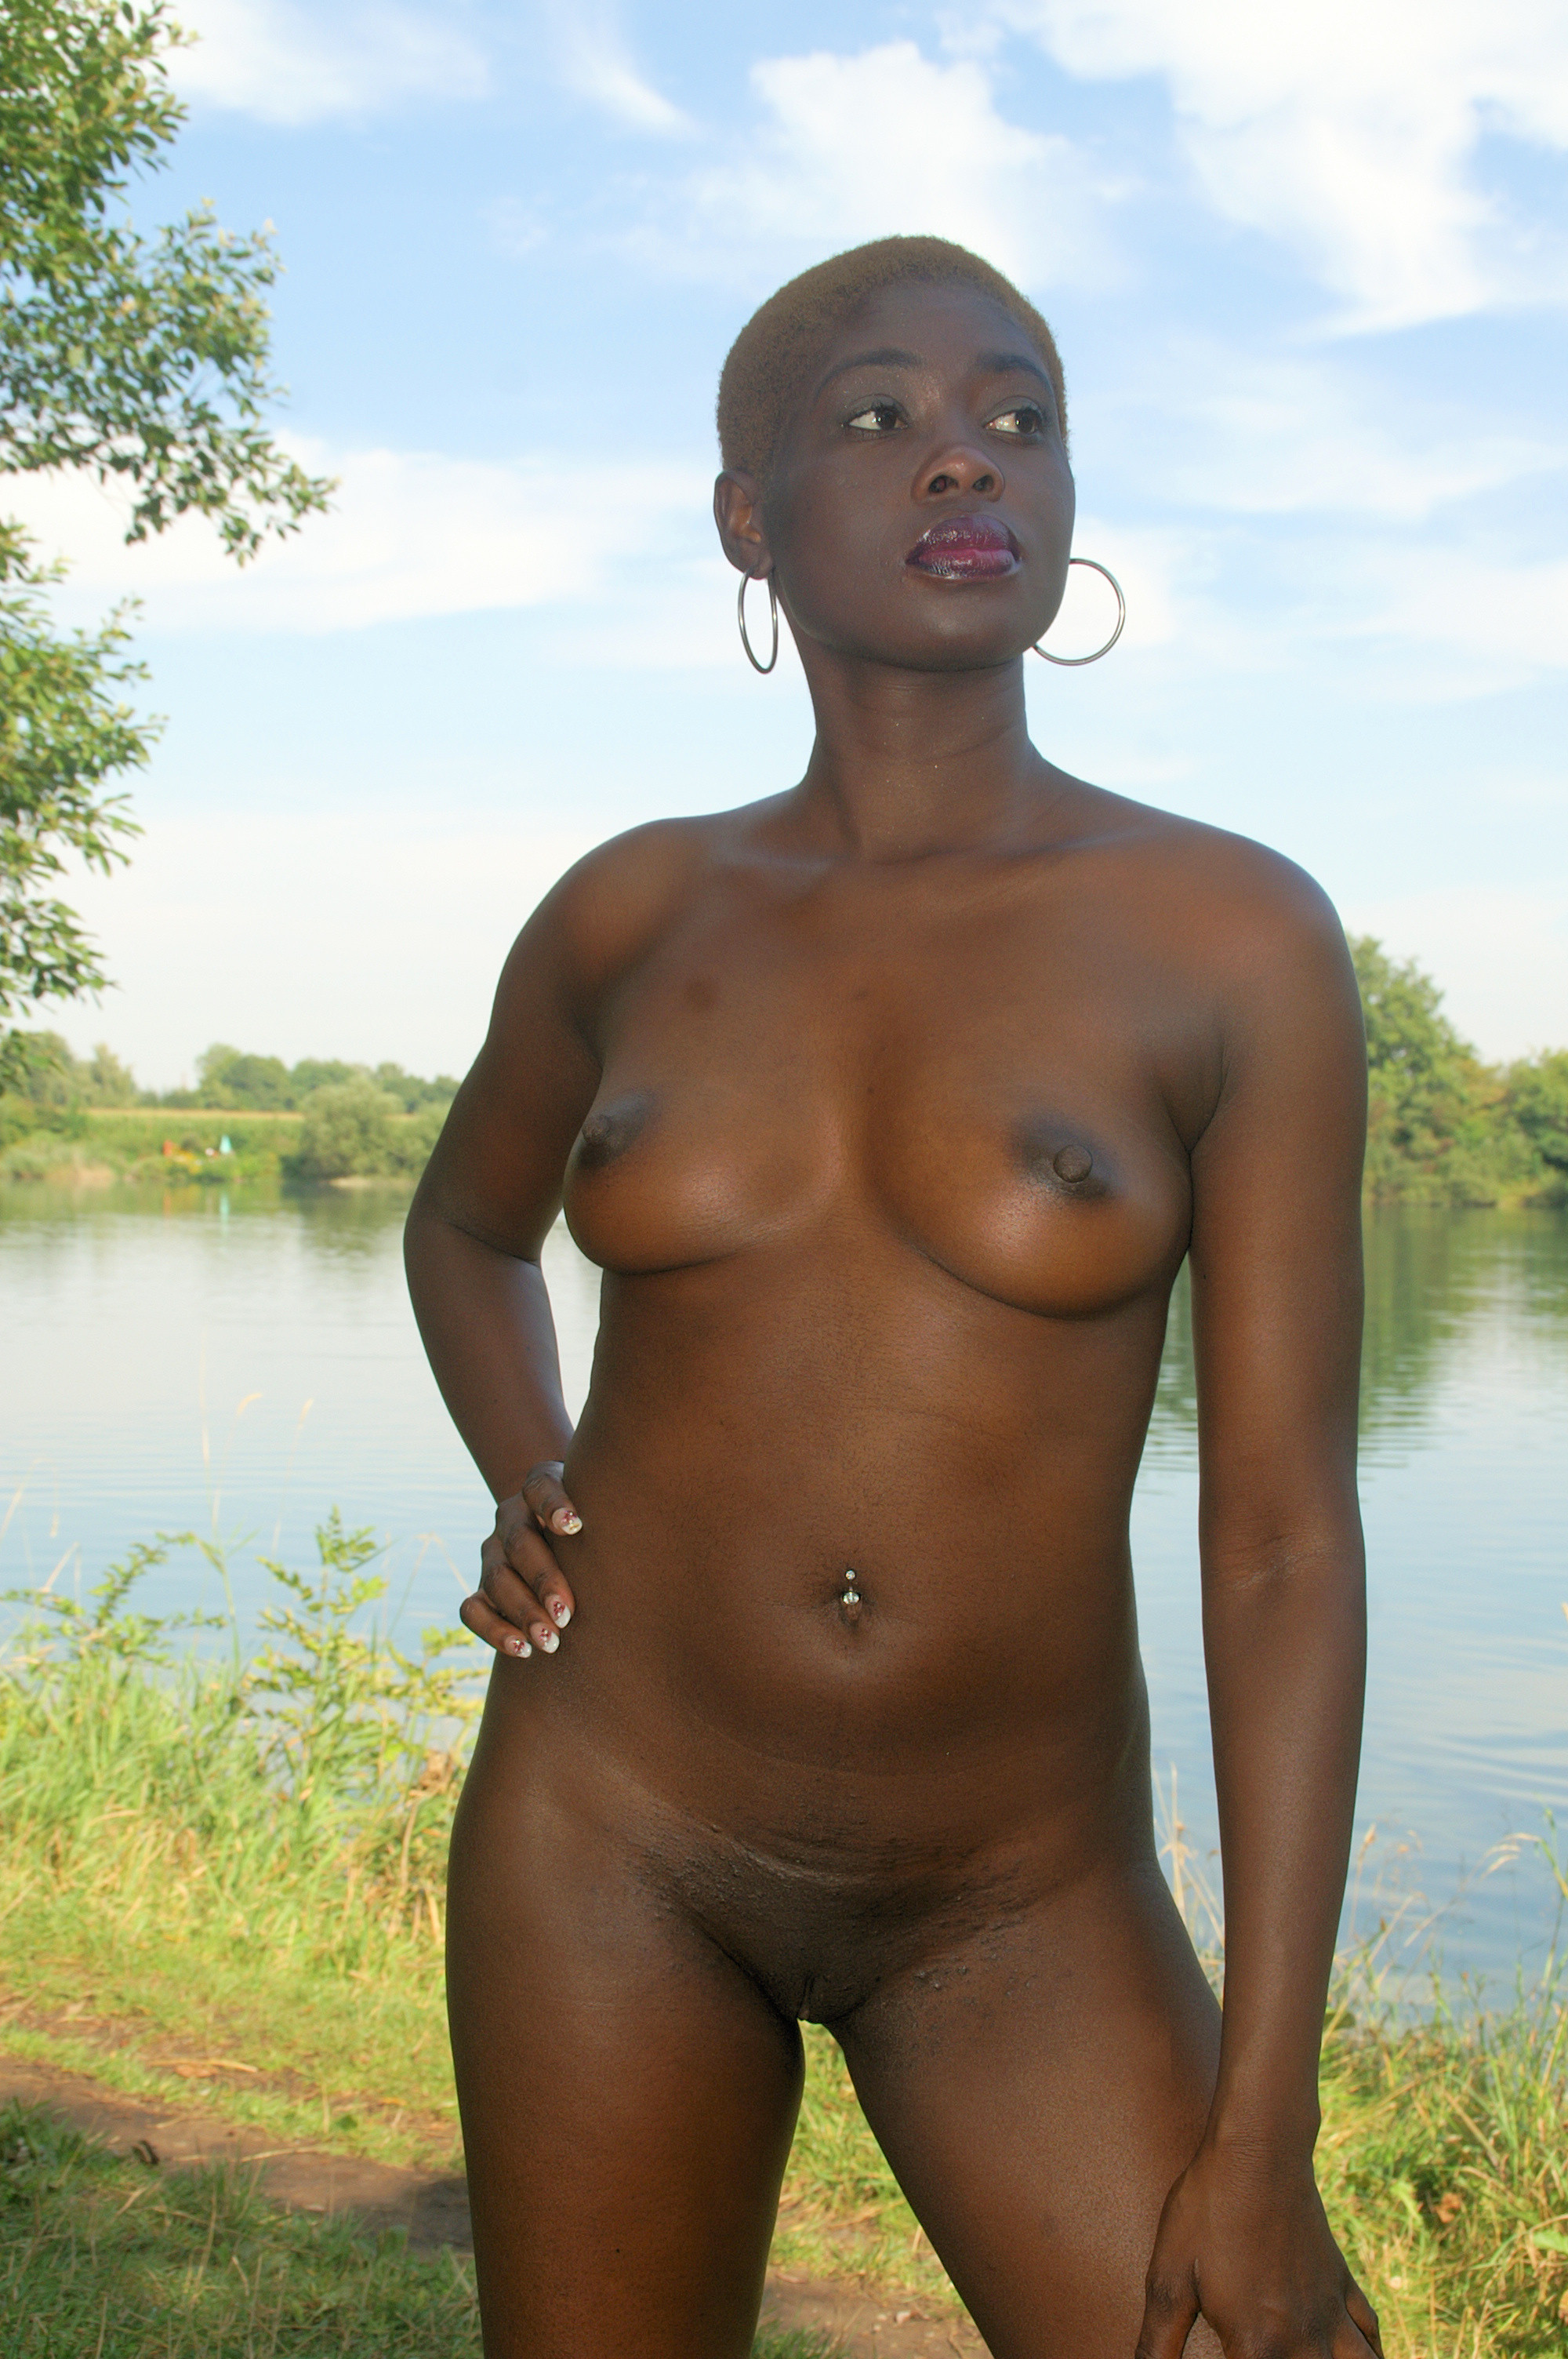 real-naked-black-women-in-africa-astralian-college-girl-nakedxxxpron